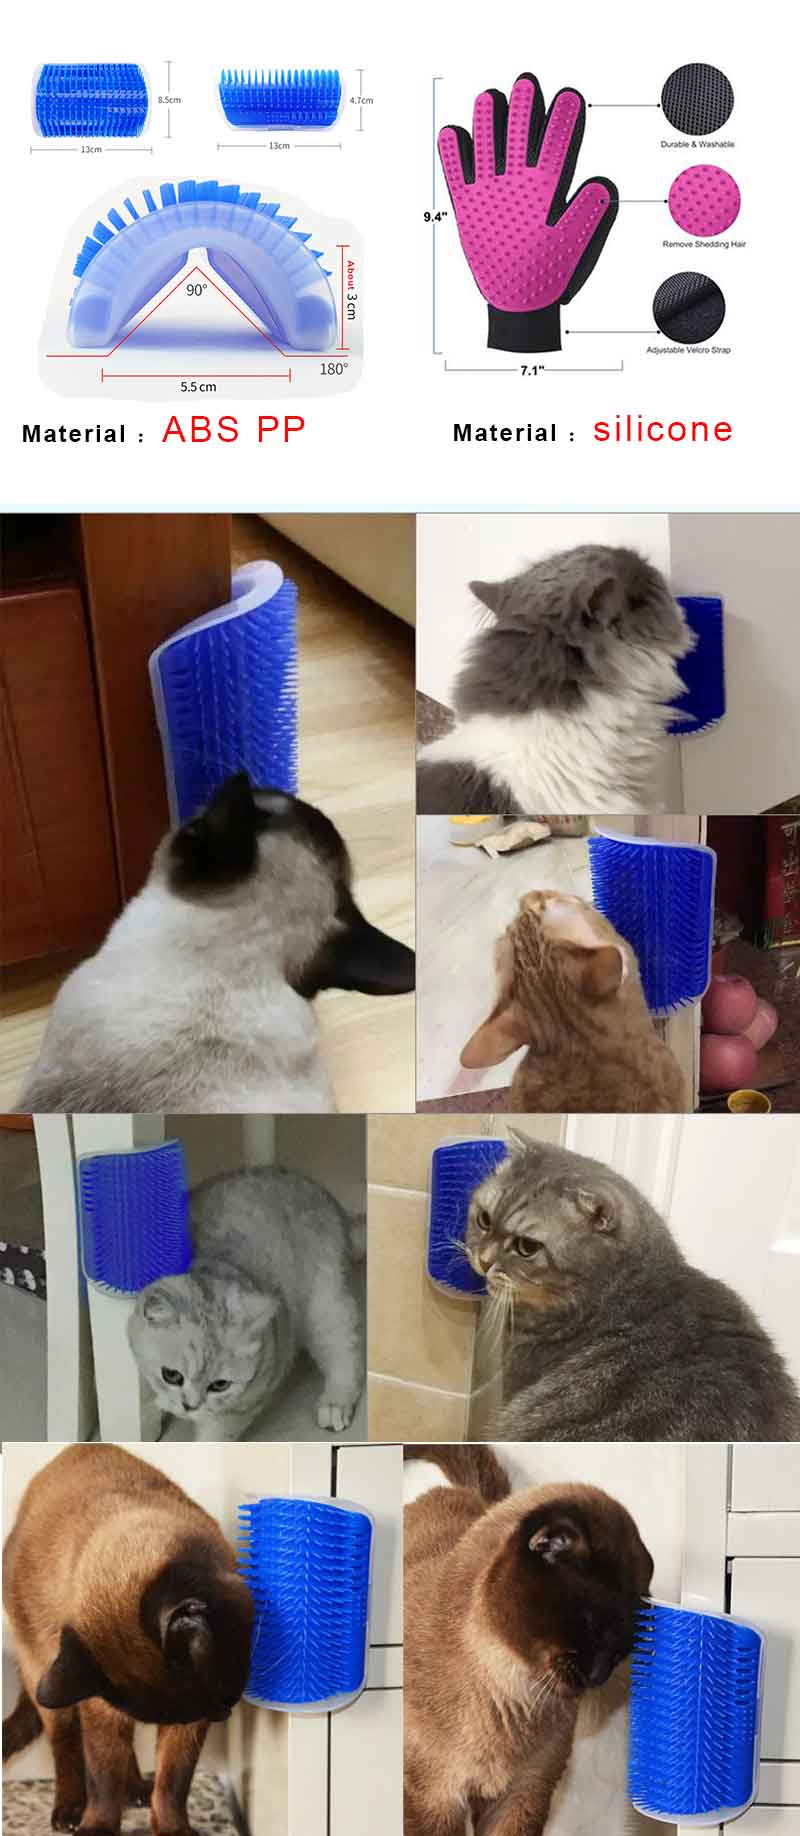 HTB1tqiME25TBuNjSspmq6yDRVXaF Cat Self Grooming Hair Accessorie With Catnip Angle Face Tickling Dog Hair Removal Massage Brush Comb And Pet Dog Cat Grooming Glove